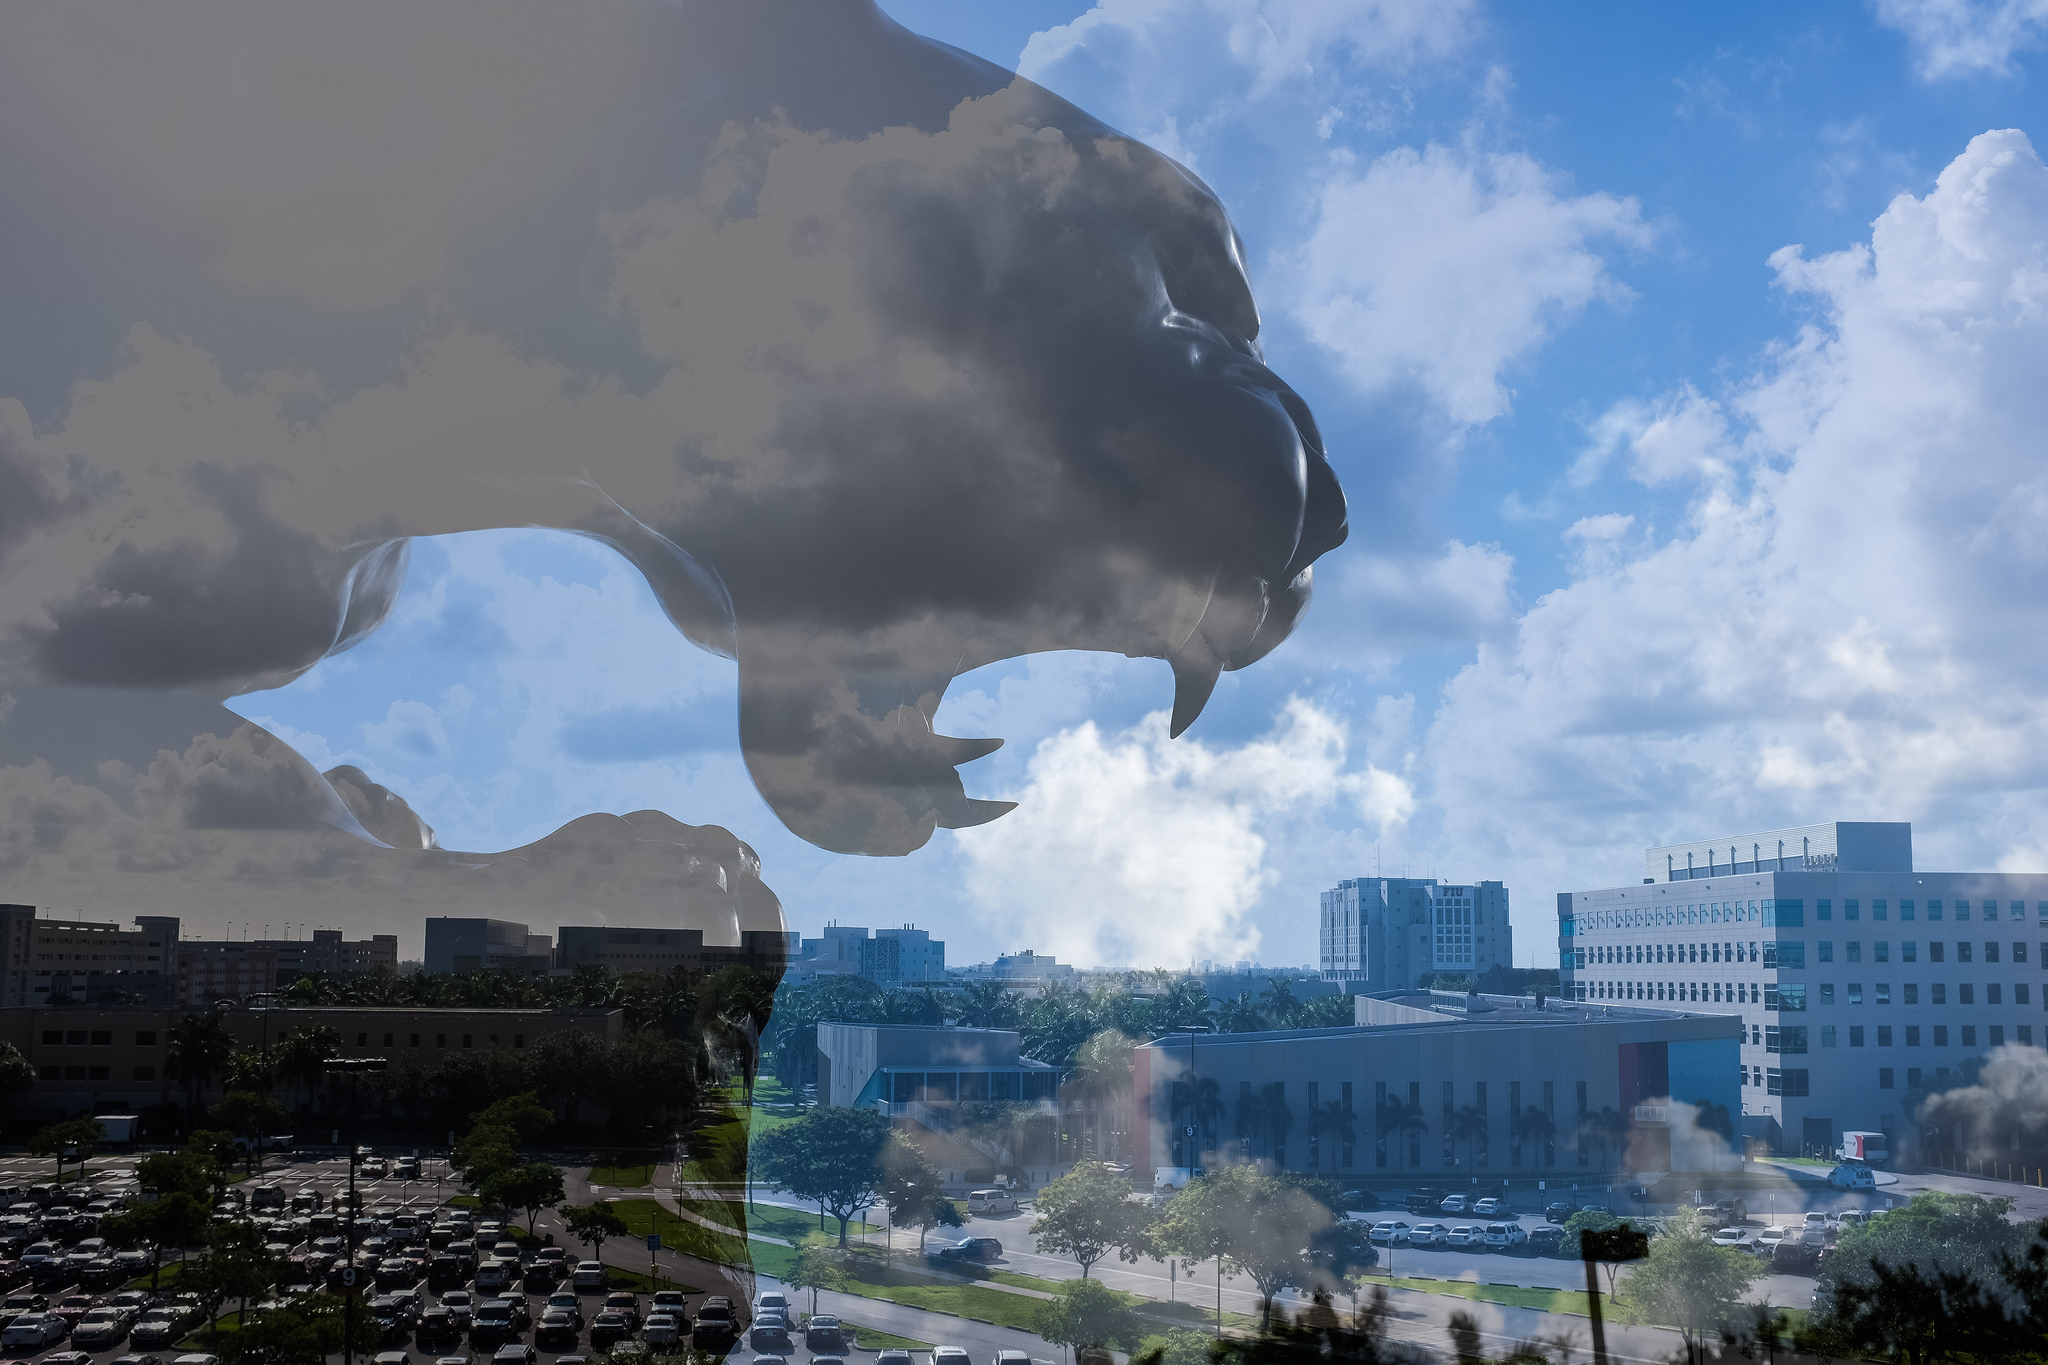 Double Exposure panther